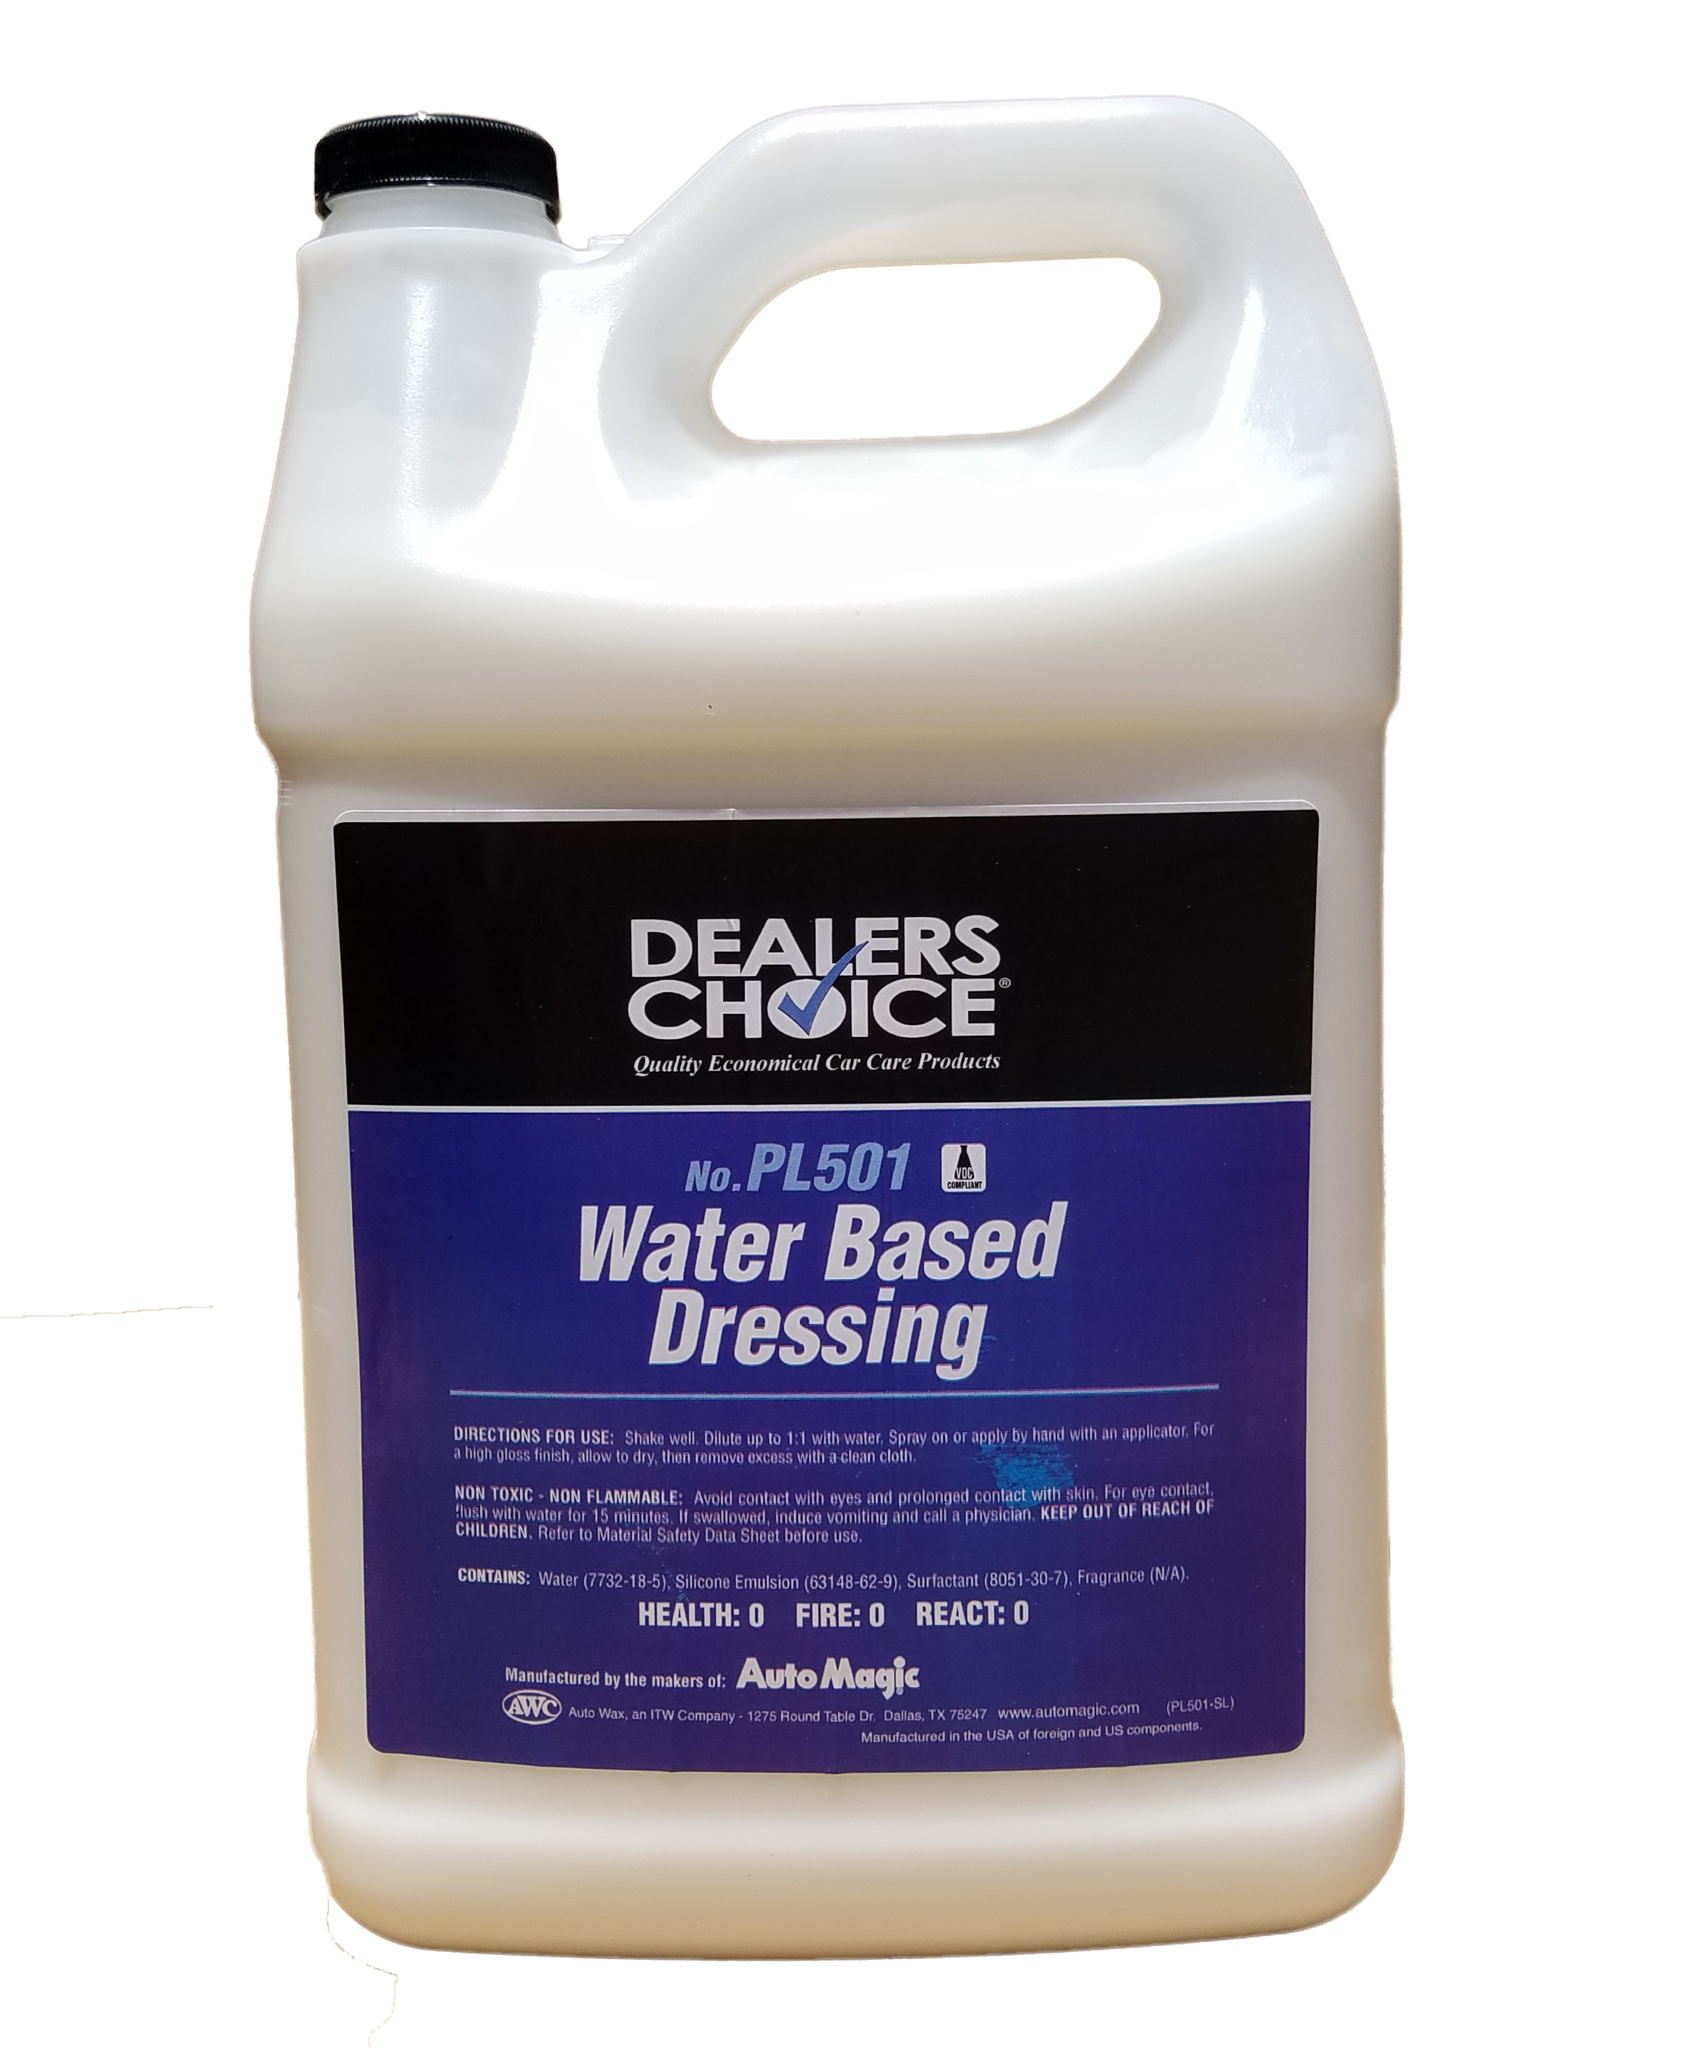 Dealer's Choice Water-Based Tire Dressing to shine tires, vinyl, moldings, and interior trim. 1 & 5 Gallon size